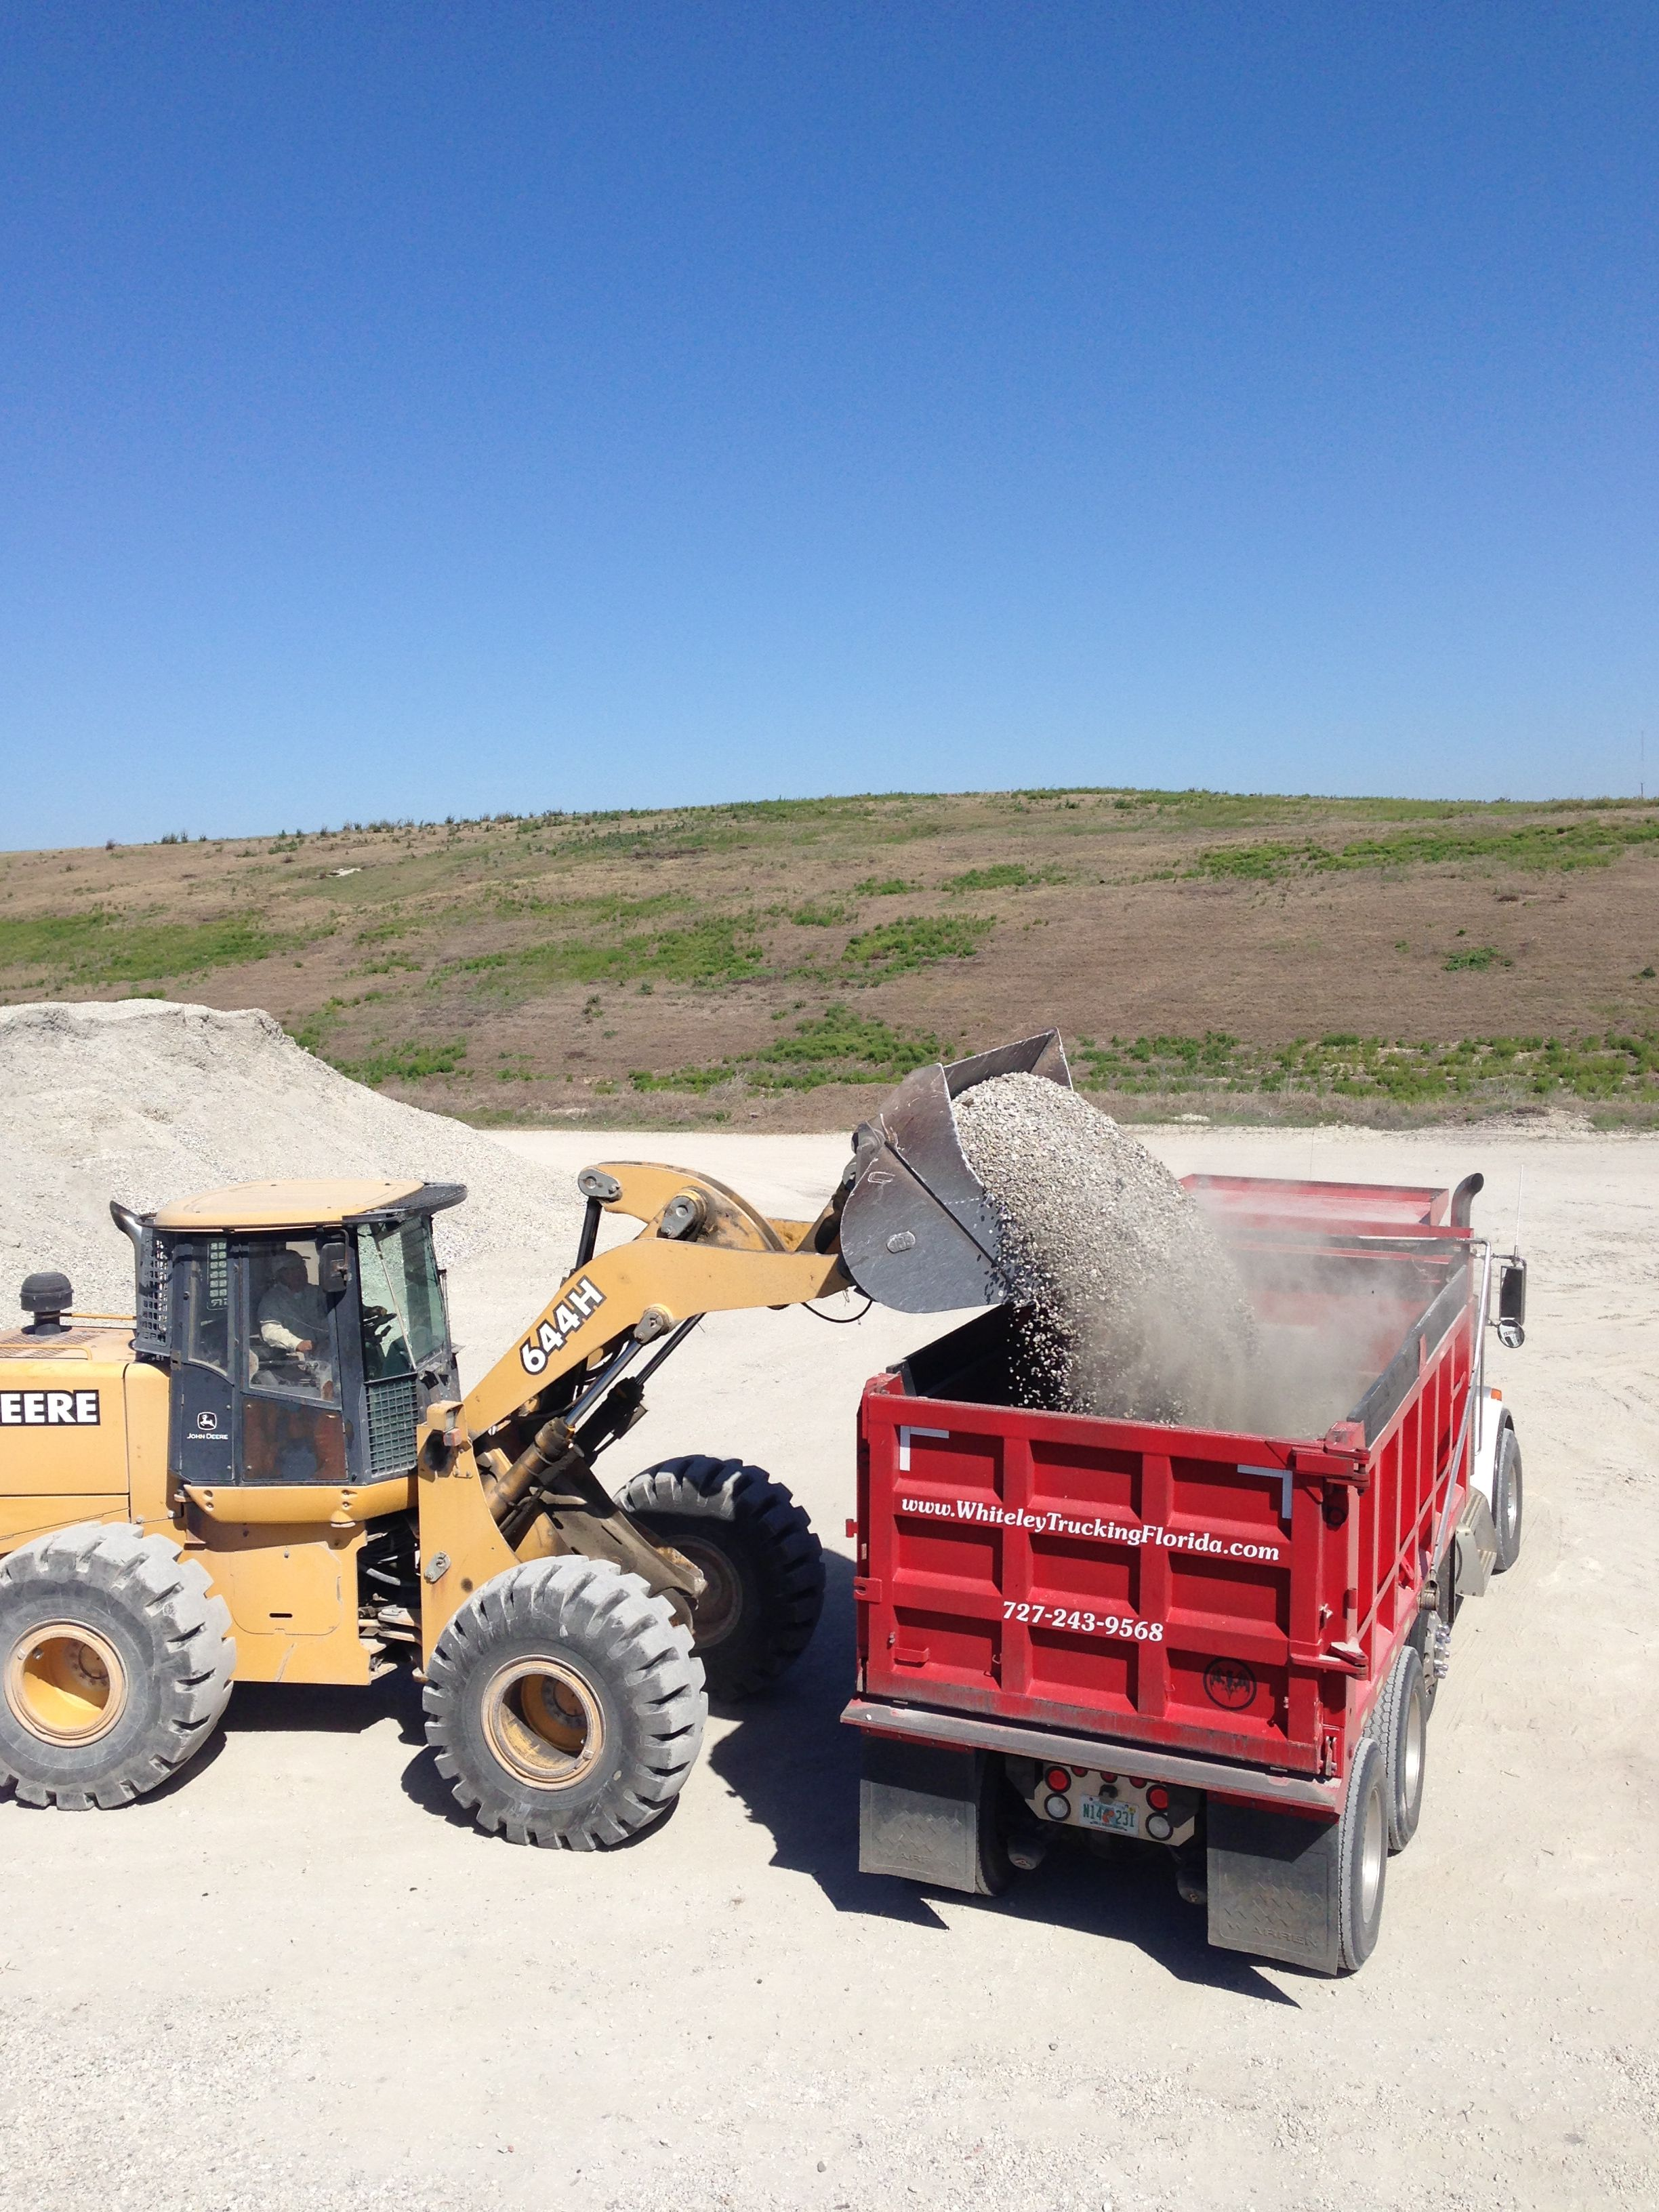 Yards Of Concrete In A Truck : yards, concrete, truck, Loader, Putting, Crushed, Concrete, Truck., 7272439568, Dirt,, Soil,, Monster, Trucks